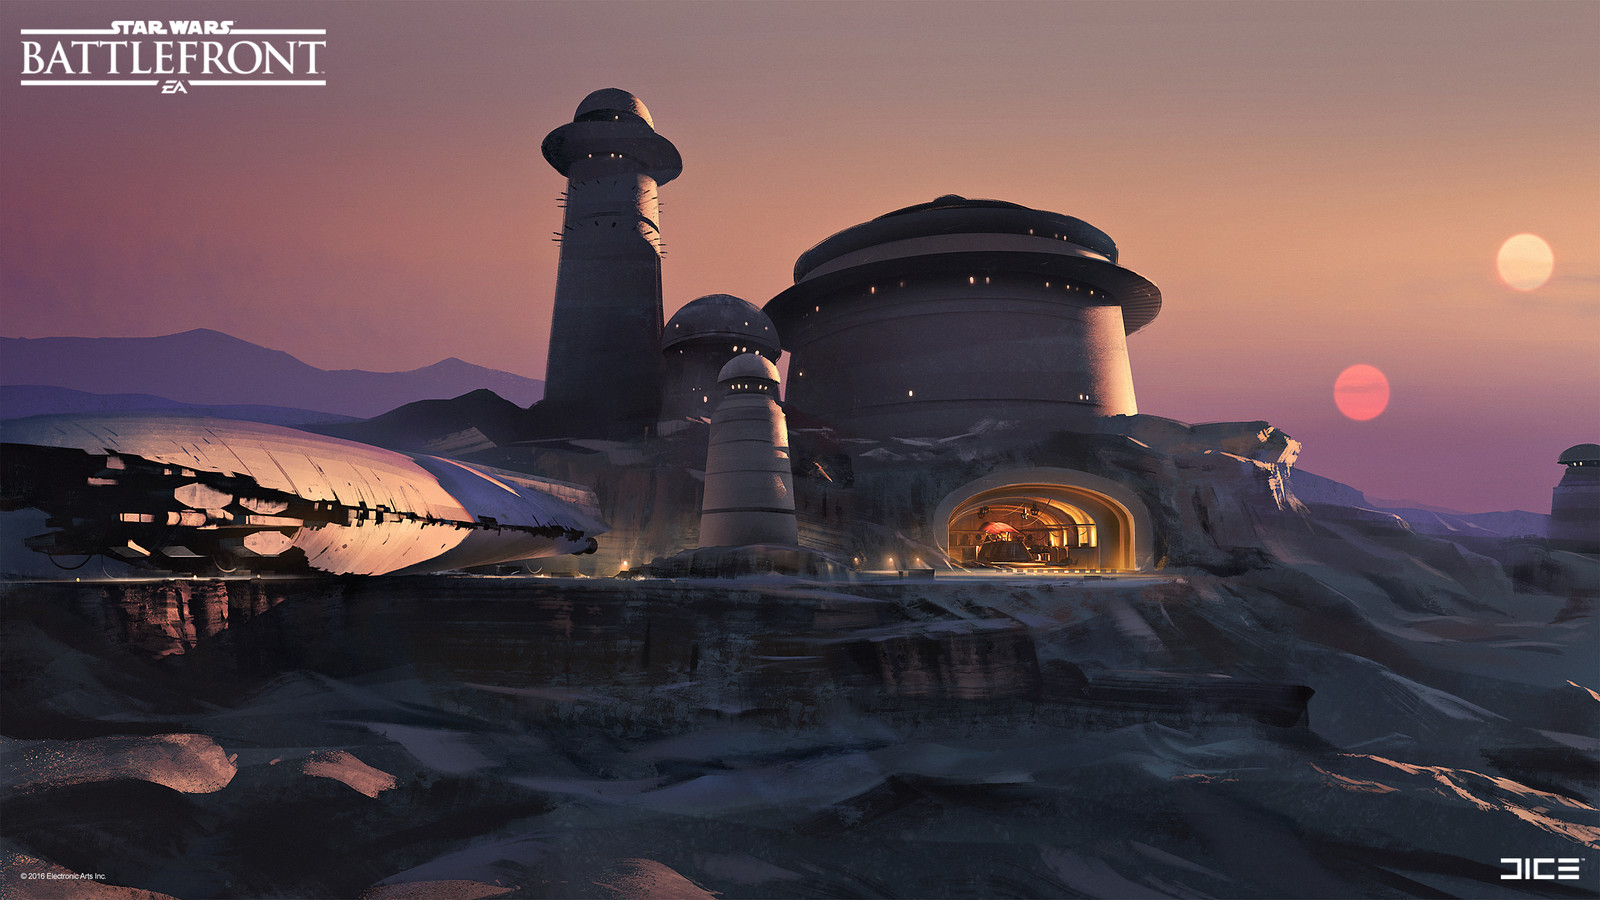 Official Jabba's Palace Concept Art  for the Star Wars Battlefront Outer Rim DLC. (2015)